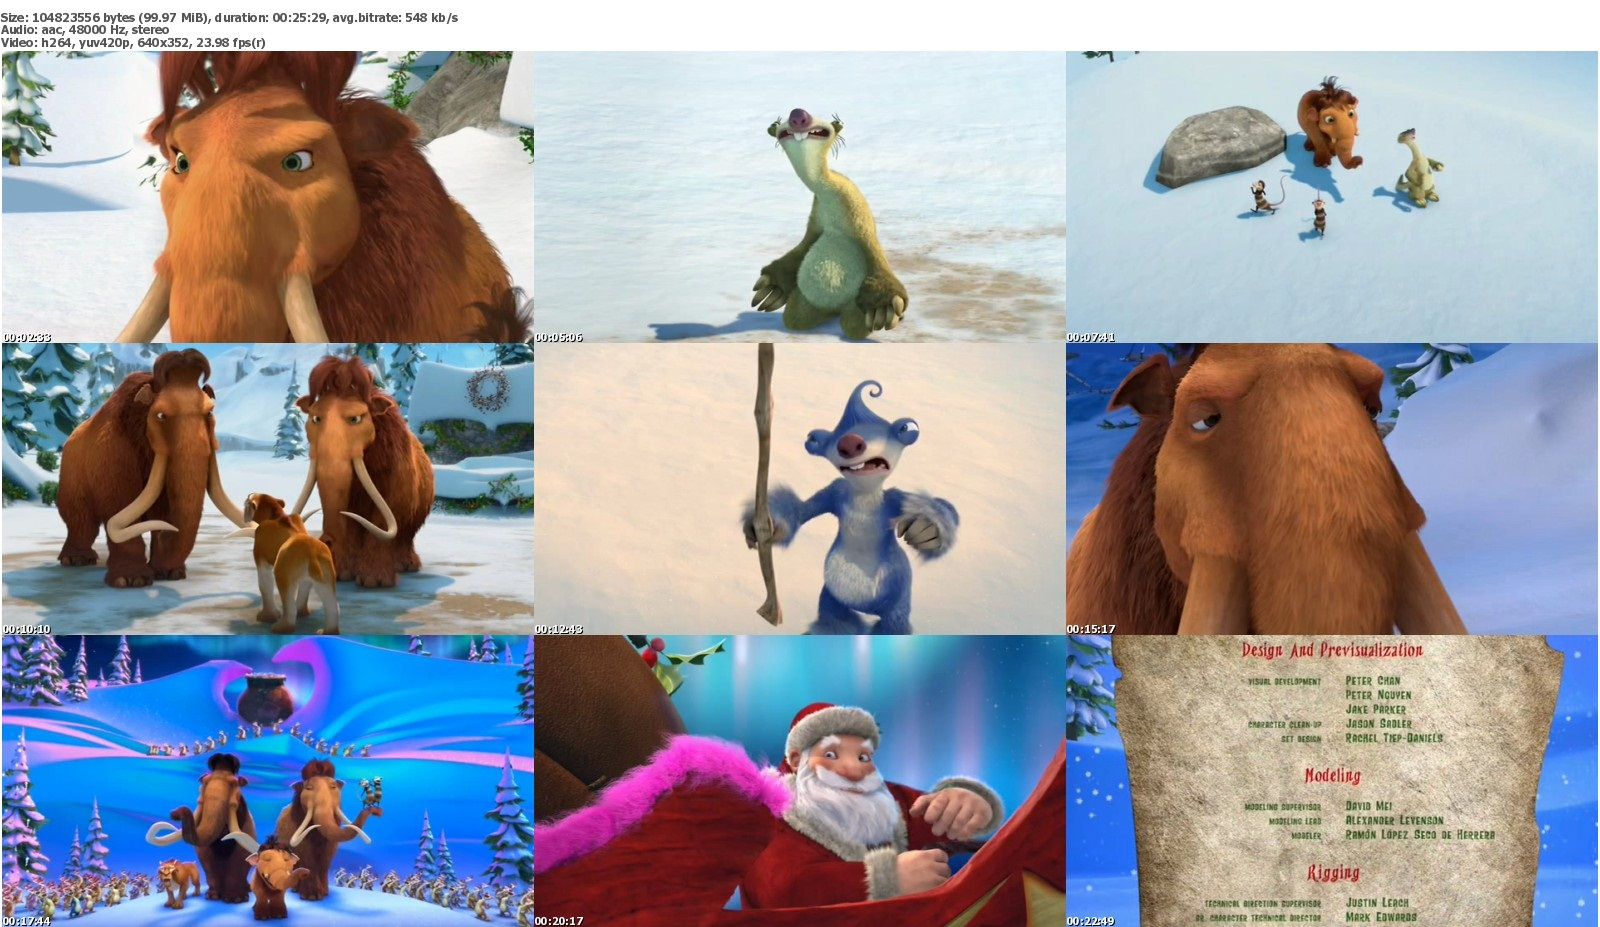 Ice Age A Mammoth Christmas (Movie 2011) DVDRip (100MB